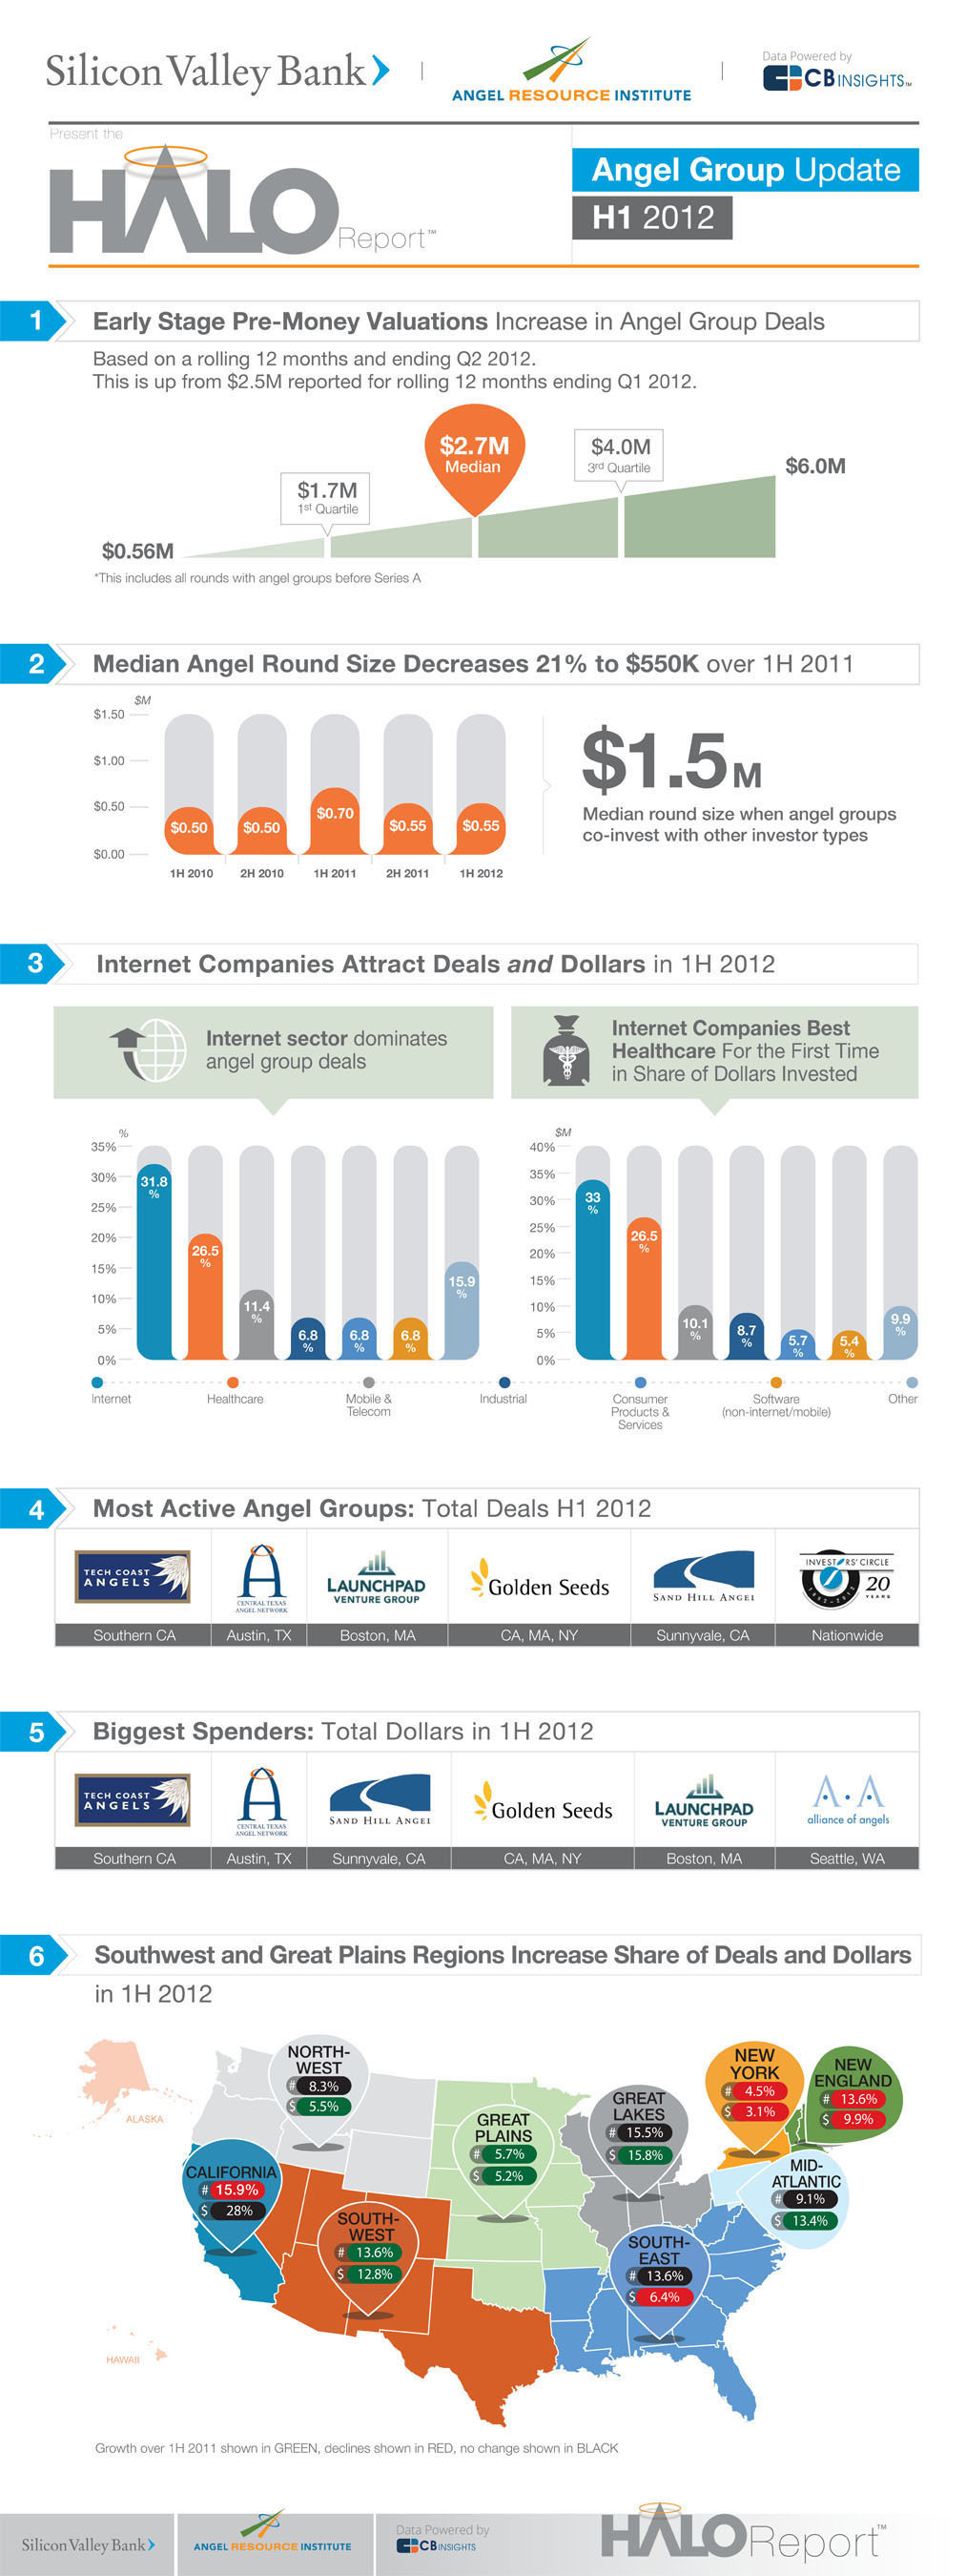 The Halo Report Reveals Angel Group Investment Trends for the First Half of 2012. Produced by the Angel ...